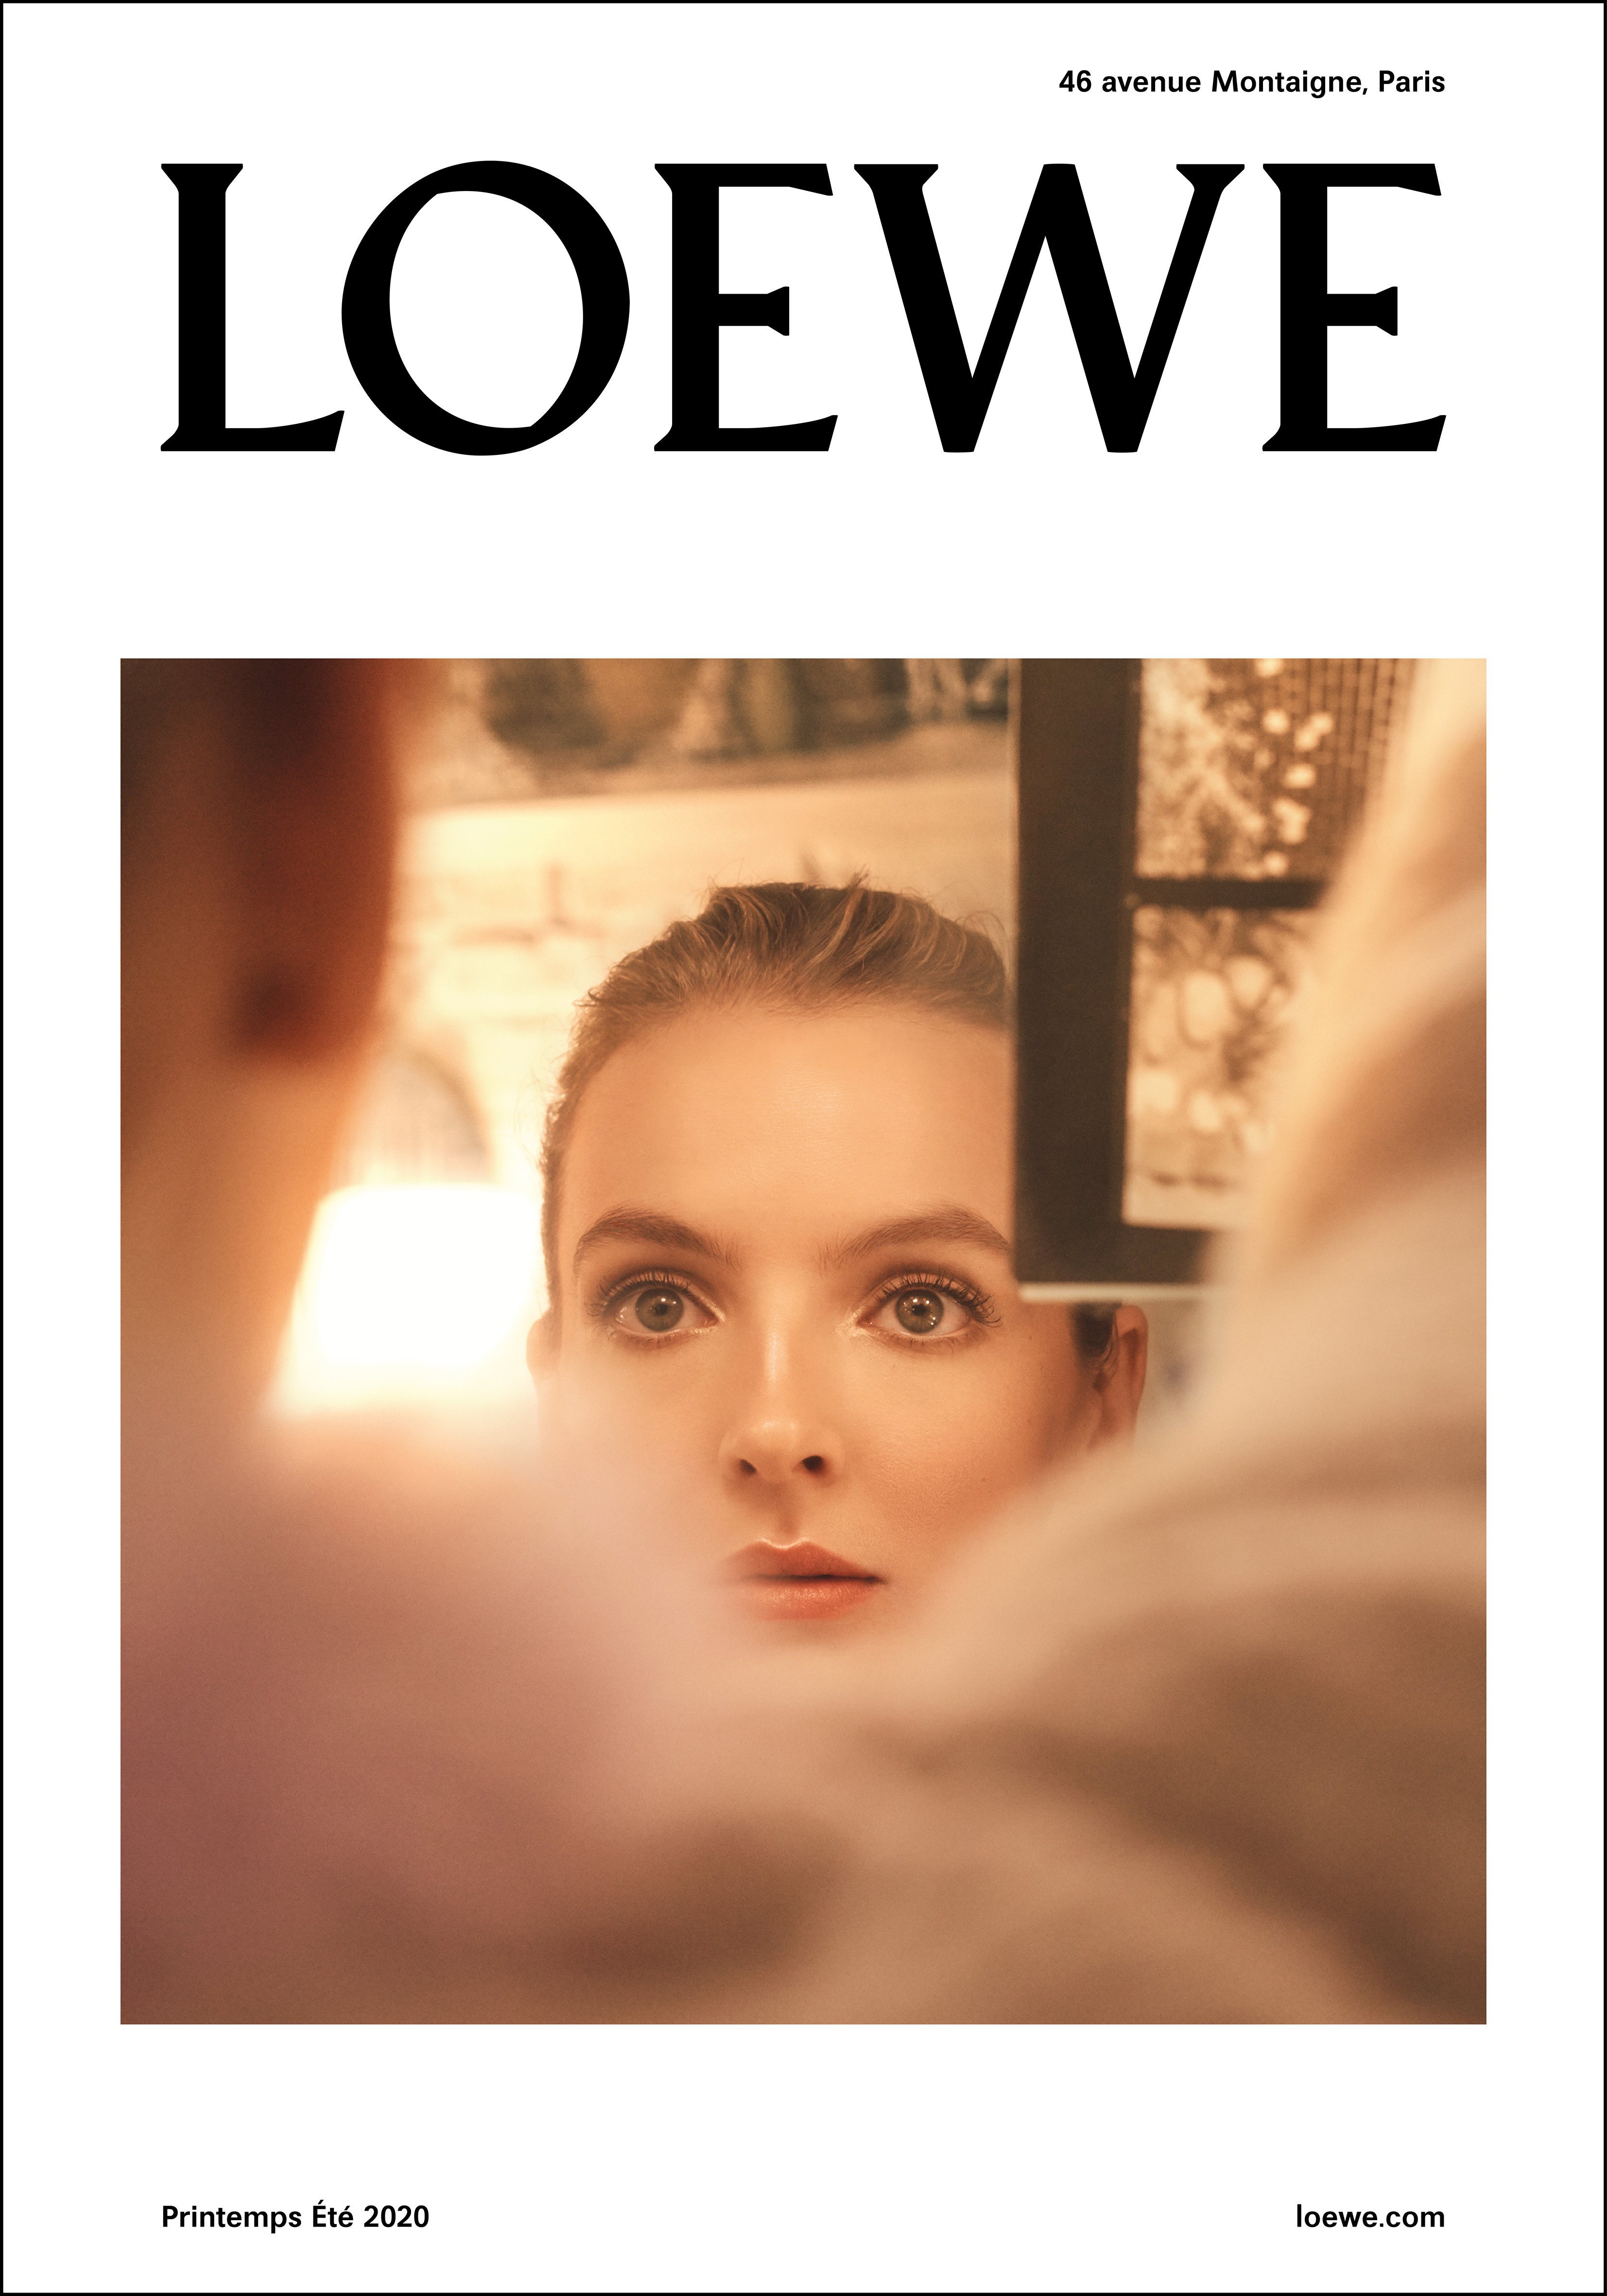 Loewe Spring Summer 2020 Womenswear Campaign featuring Jodie Comer